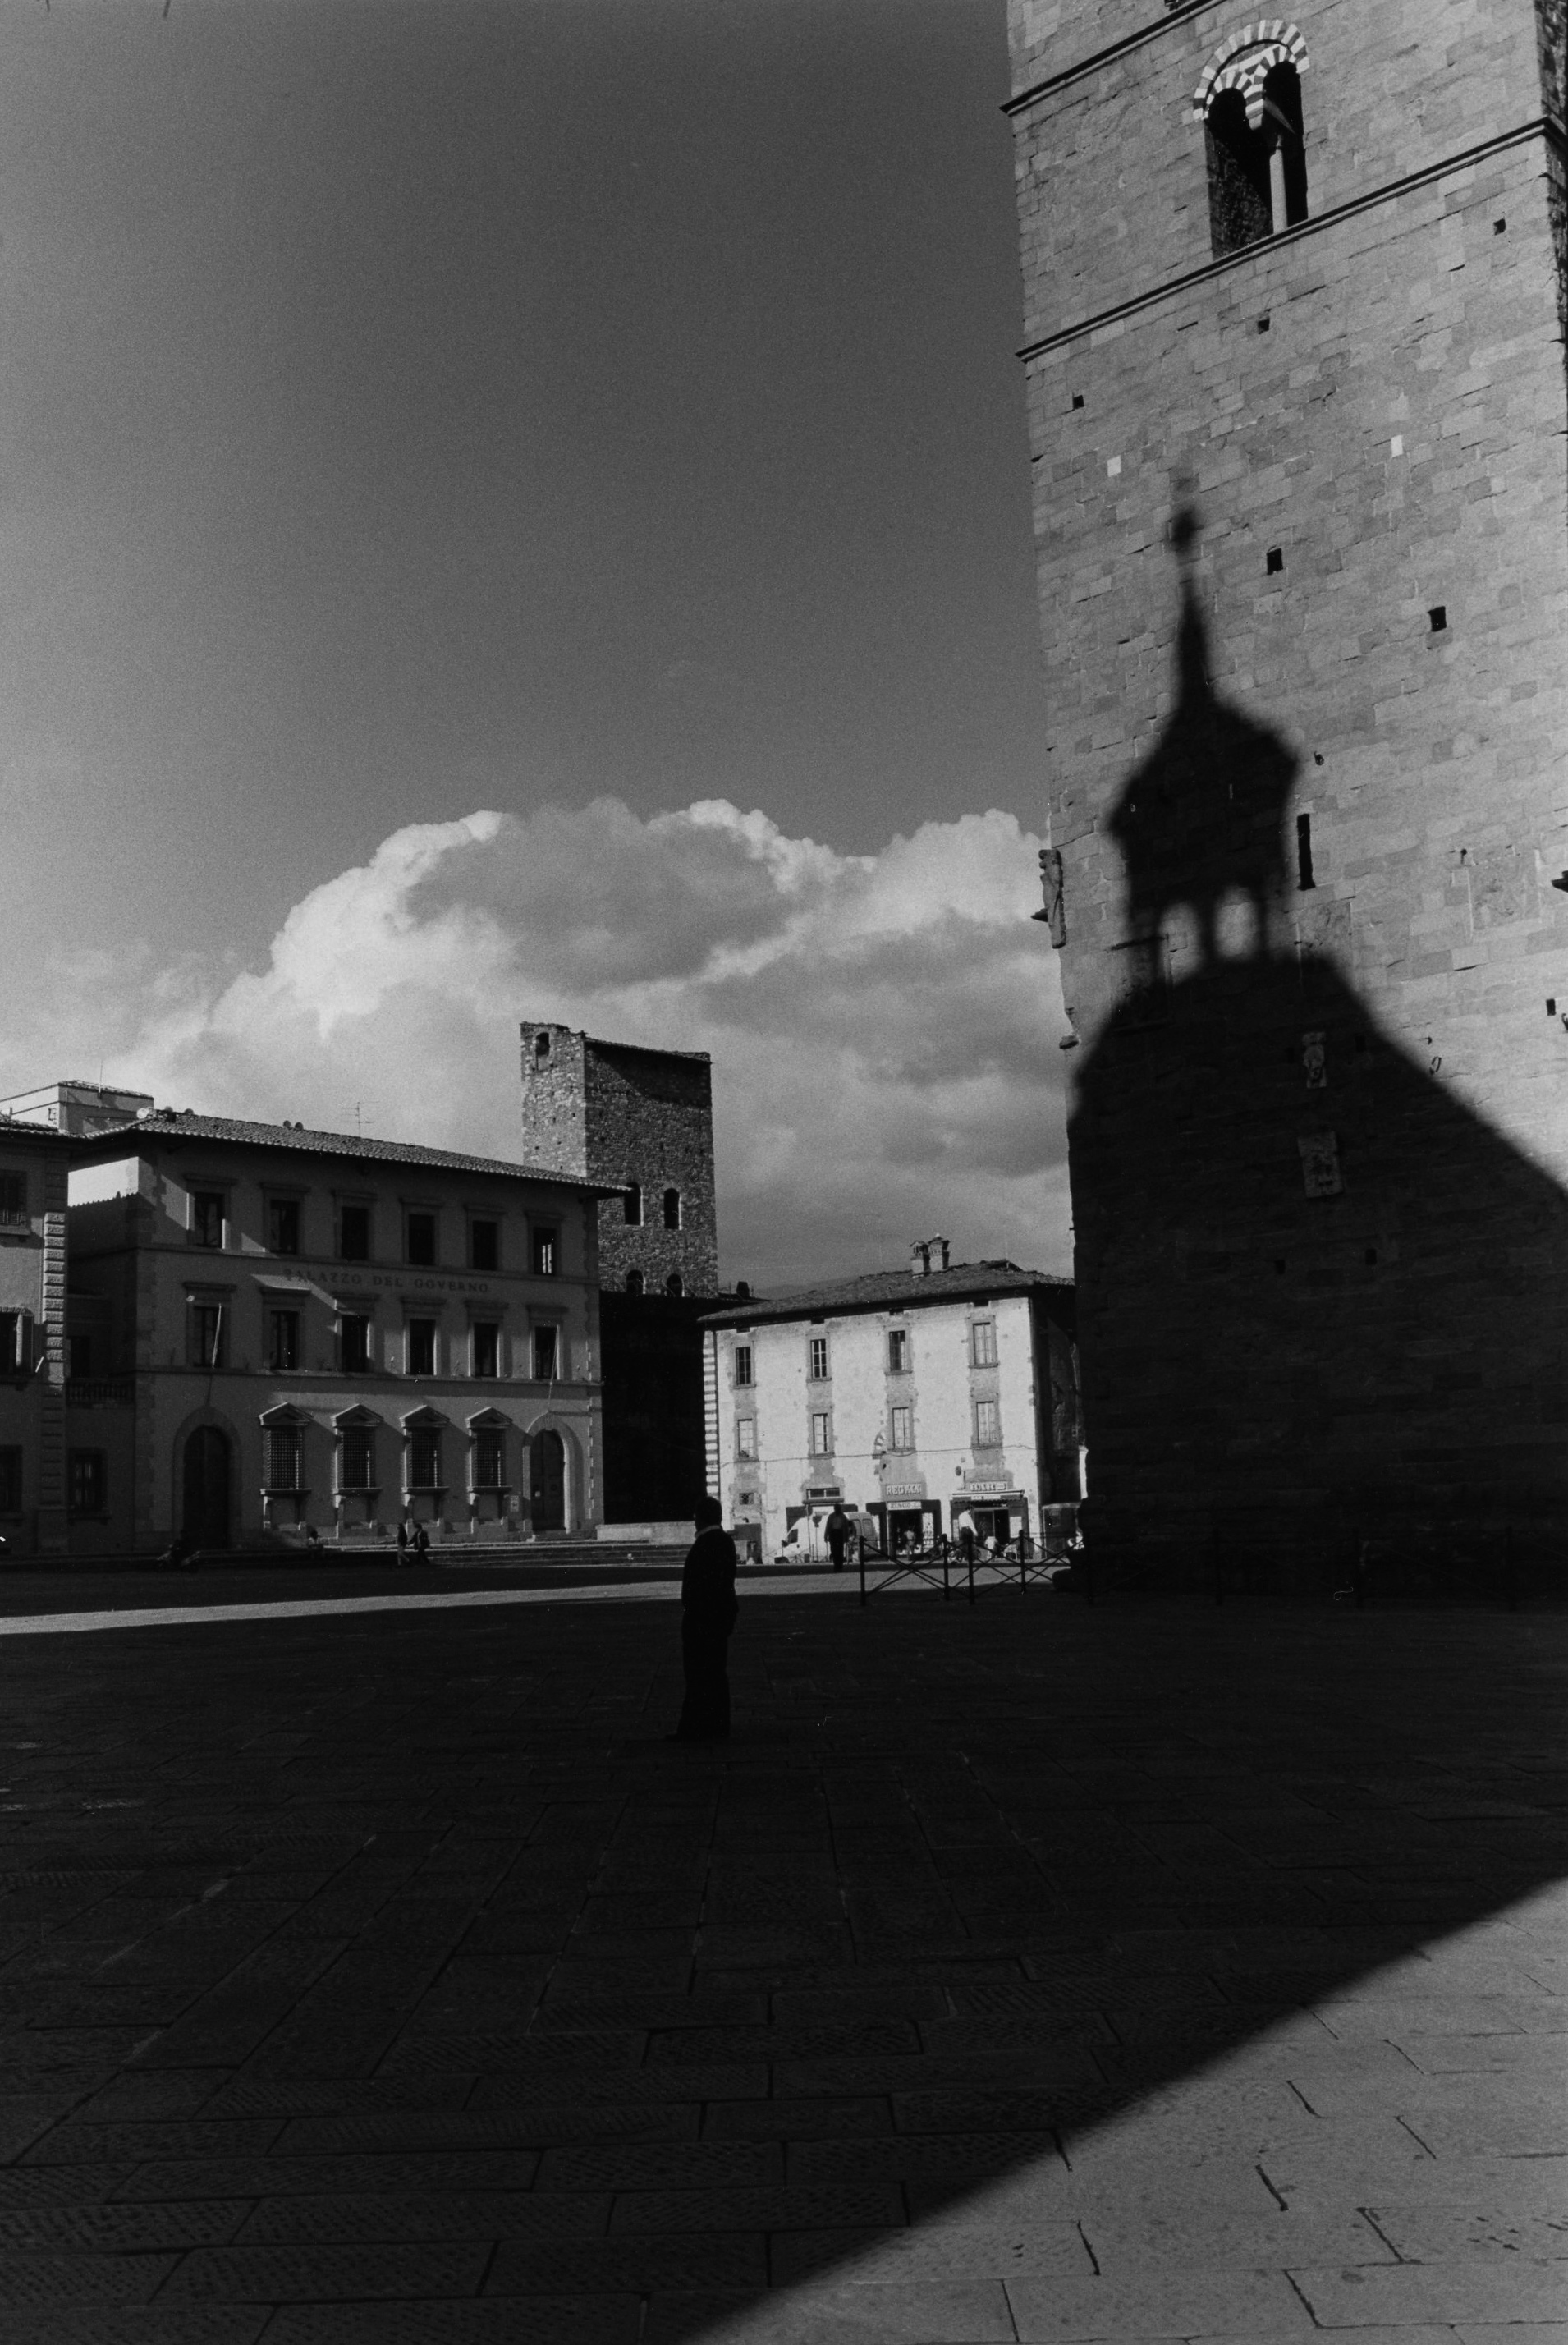 Pistoia, Italy. 1996. © By Paul Goldfinger